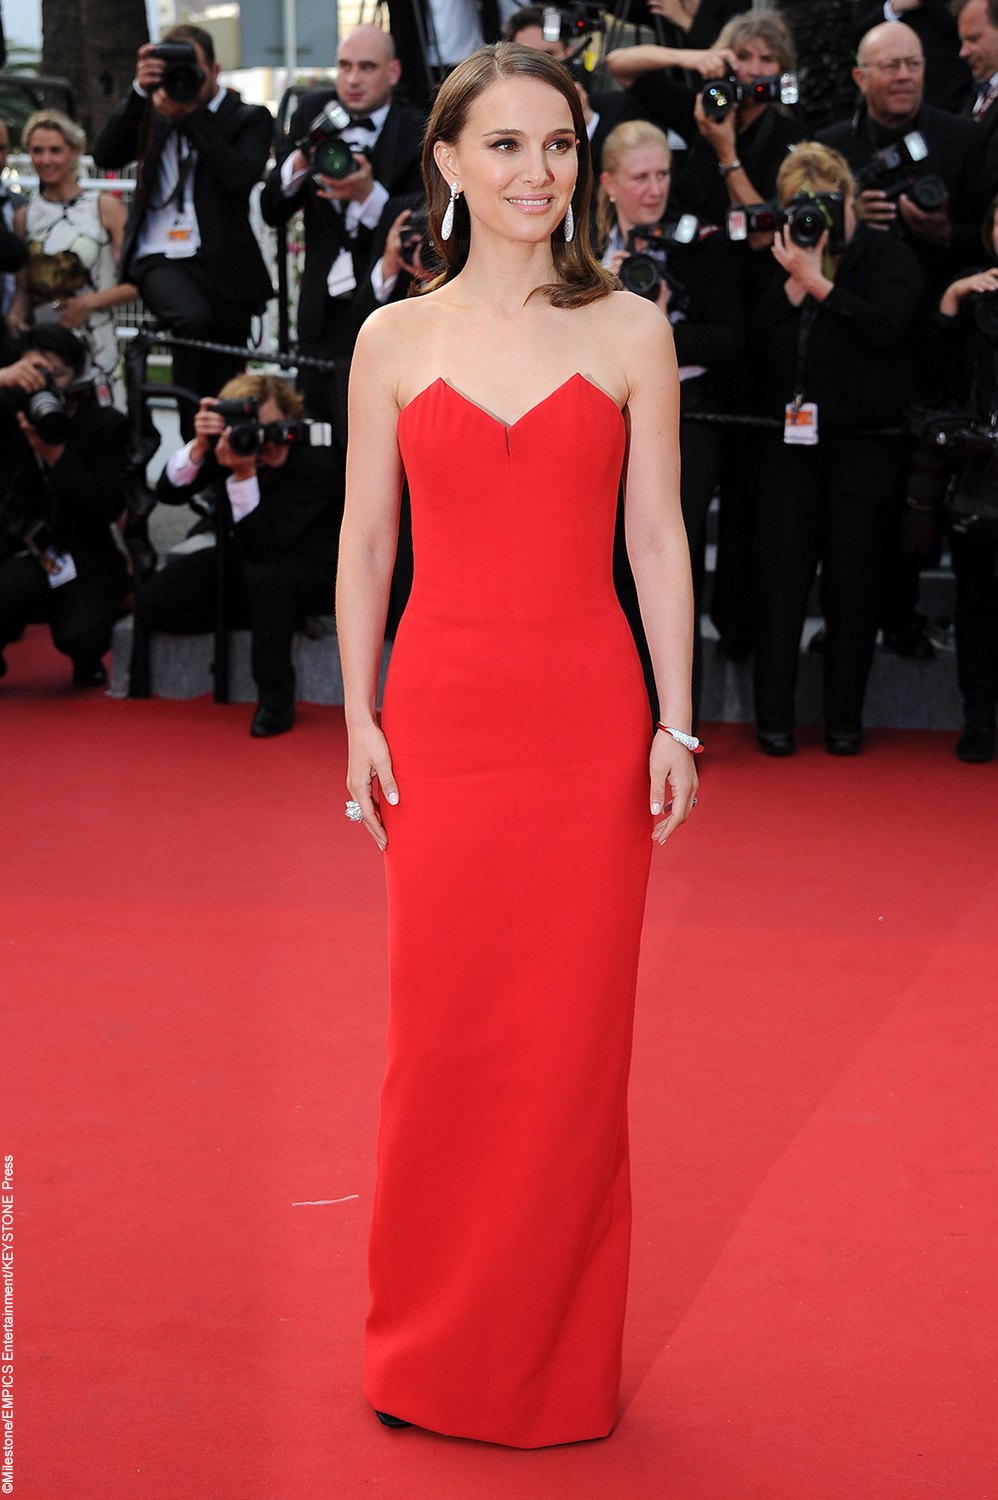 Oscar-winner Natalie Portman was classic and elegant at the opening ceremony. Donning a strapless red gown, classic drop earrings and sleek hair, the actress looked incredible.